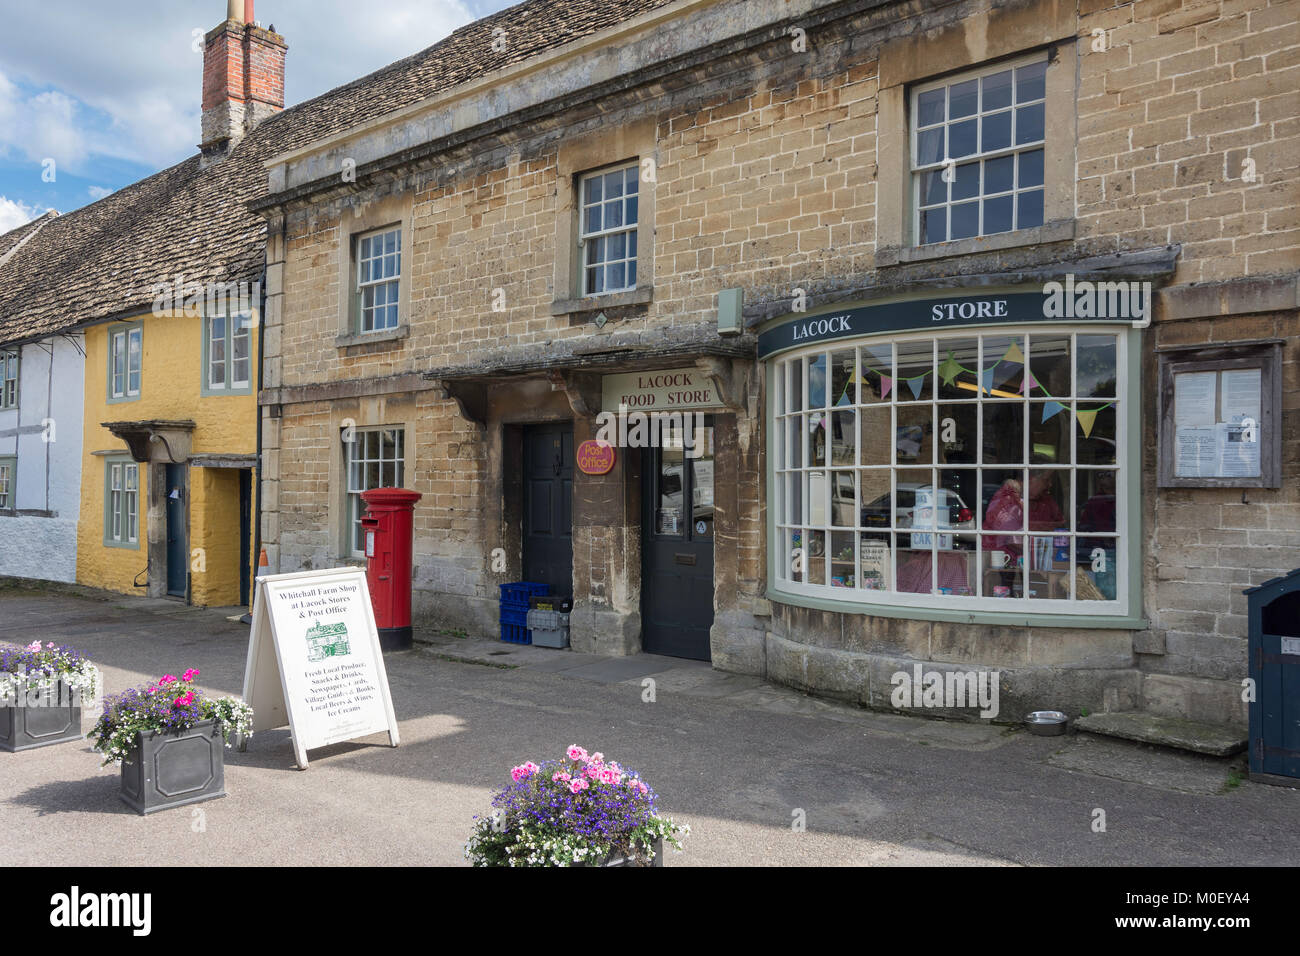 Whitehall Farm Shop at Lacock Stores and Post Office, High Street, Lacock, Wiltshire, England, United Kingdom - Stock Image